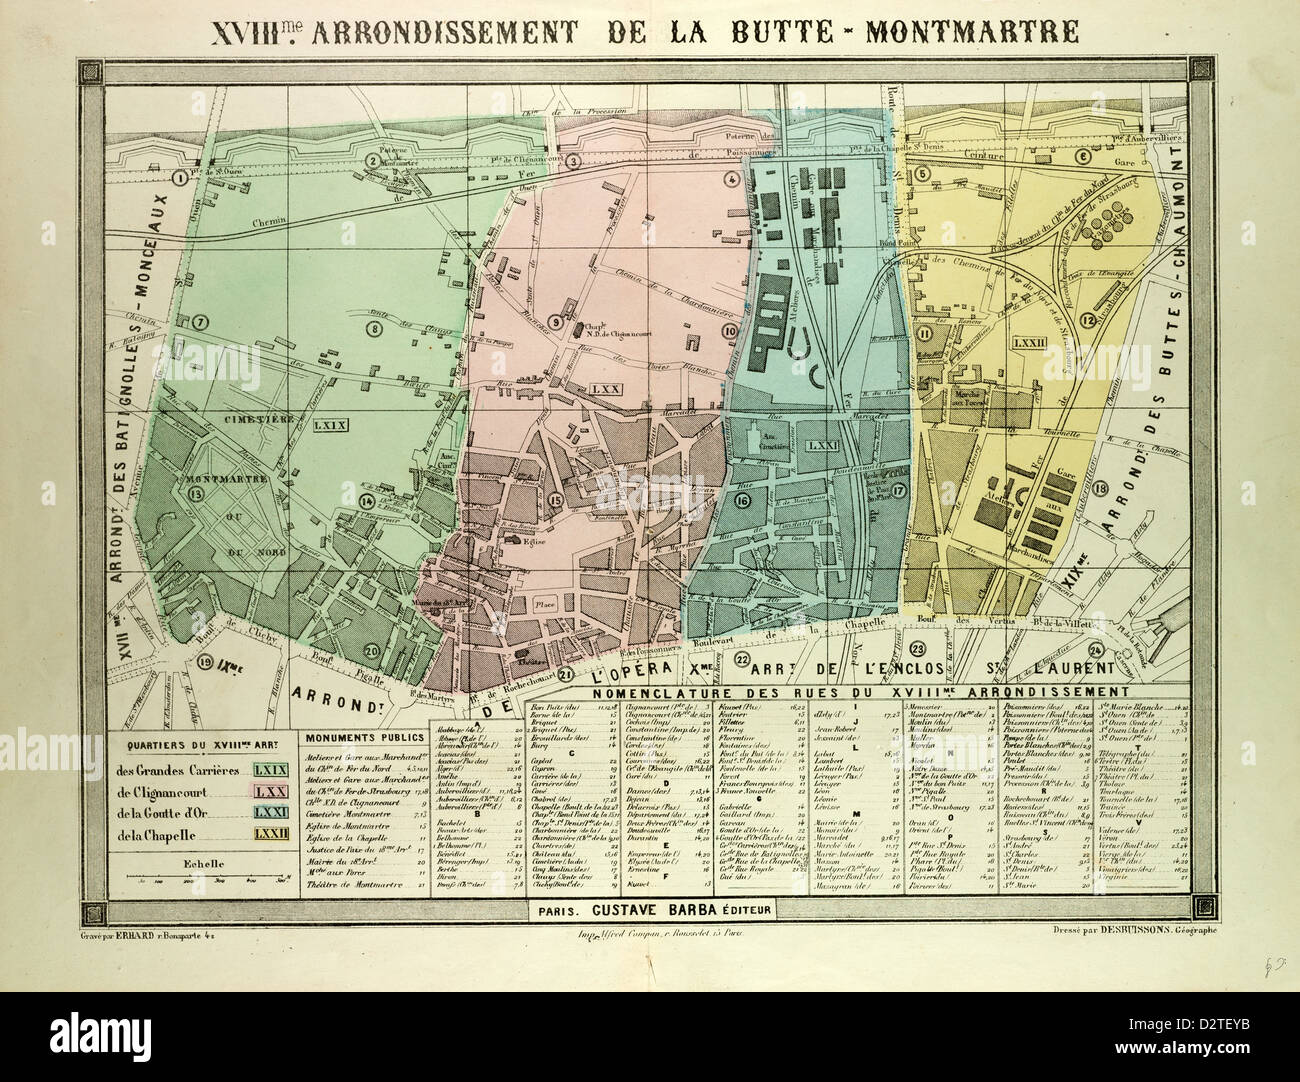 Map Of 18th Arrondissement De La Butte Montmartre Paris France Stock